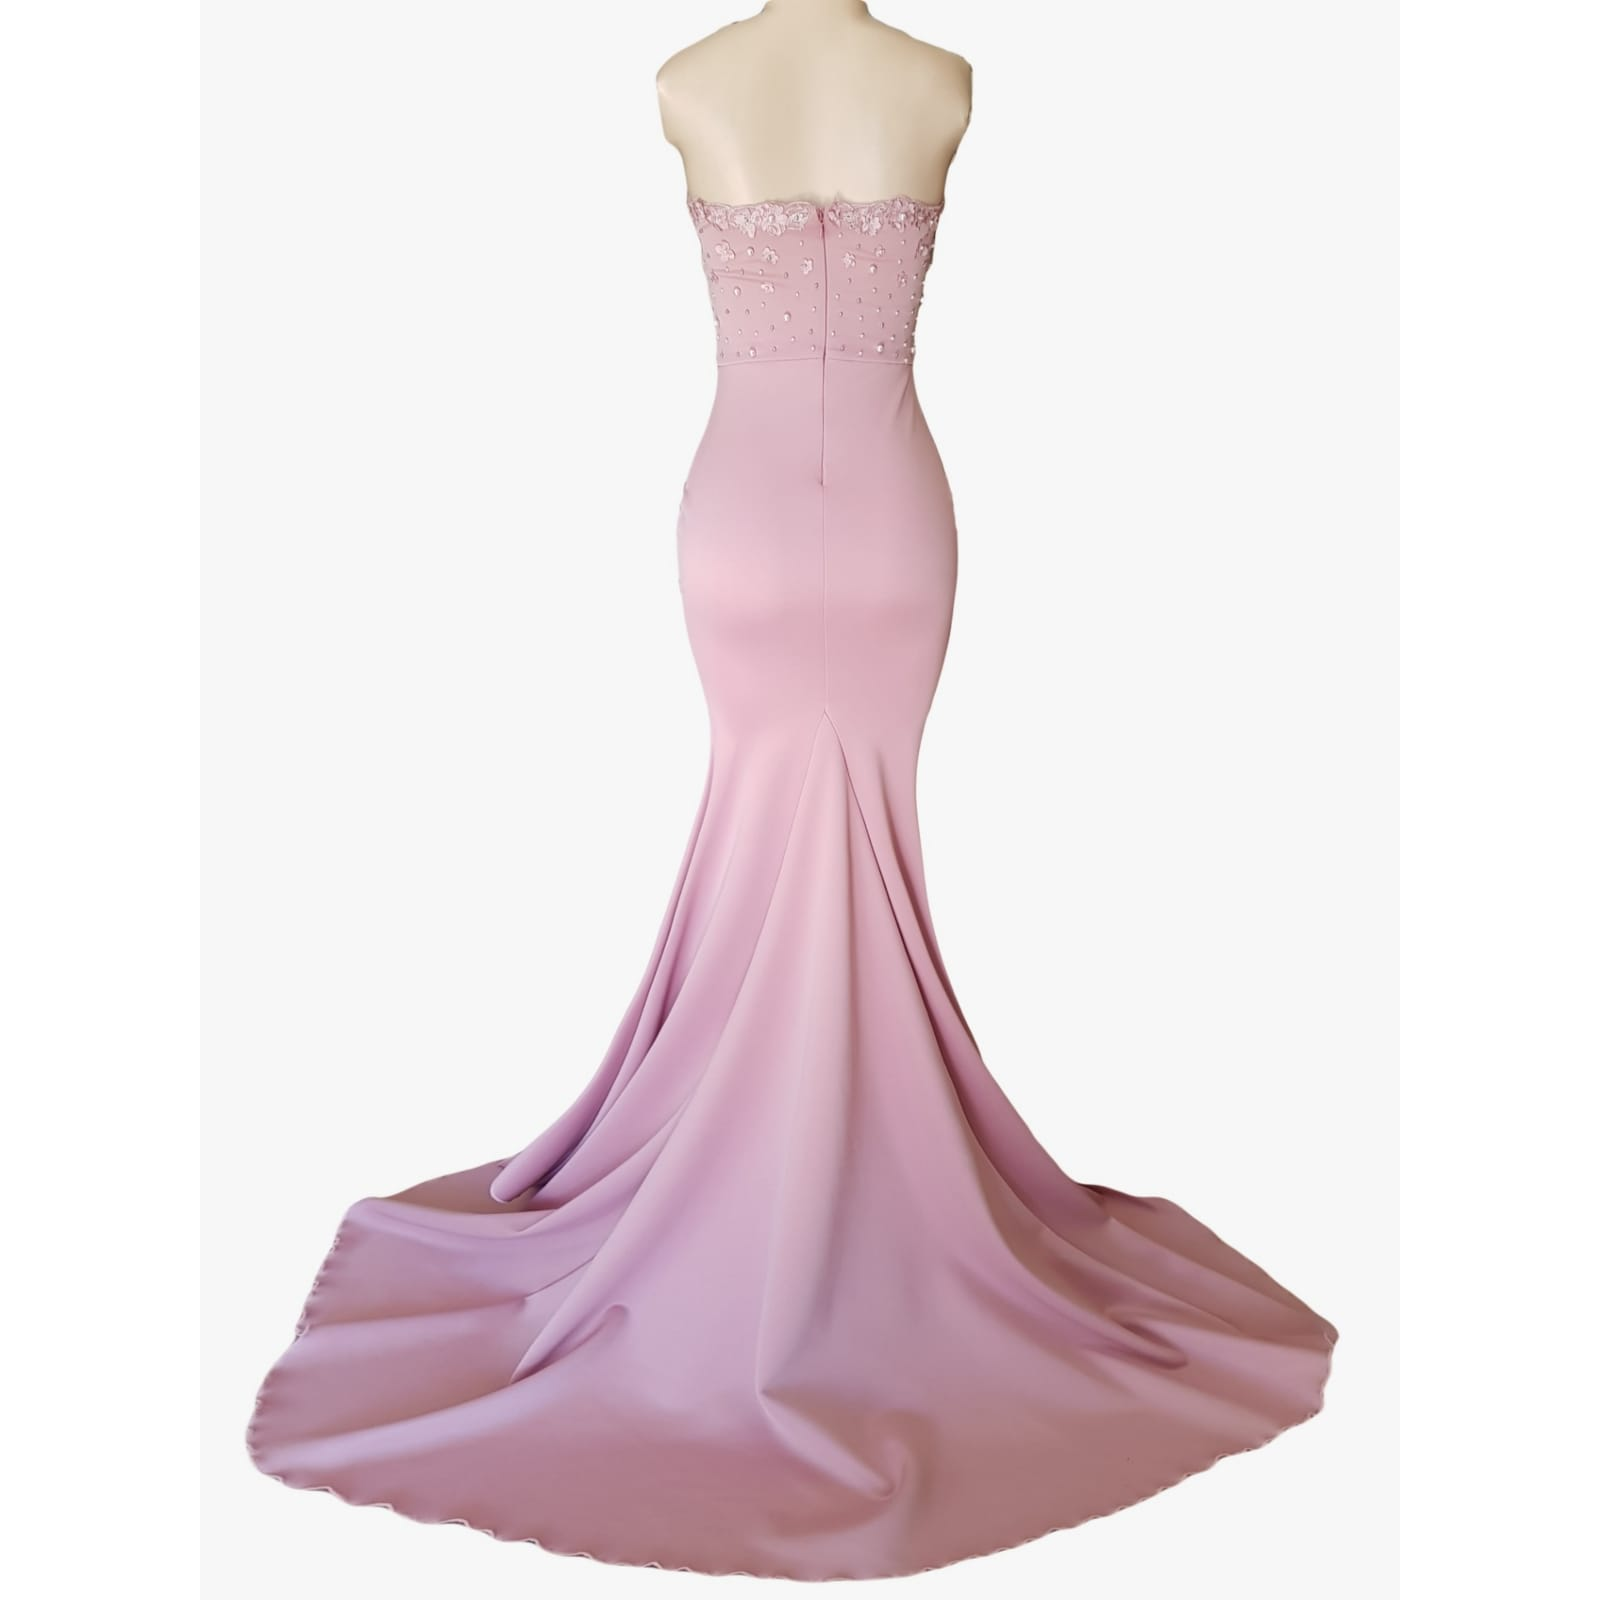 Pale pink soft mermaid matric dance dress 4 pale pink soft mermaid matric dance dress, bodice detailed with pearls and 3d lace, with a train and detachable neck strap.